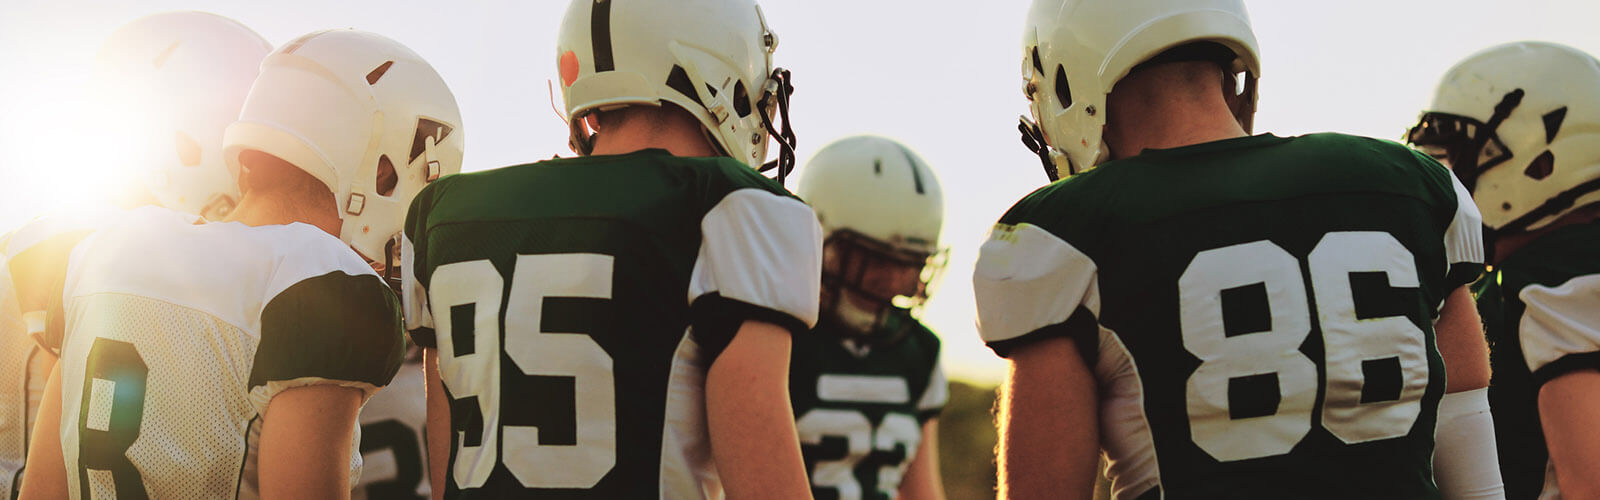 Football, Mindfulness, and the Benefits of Conscious Collaboration